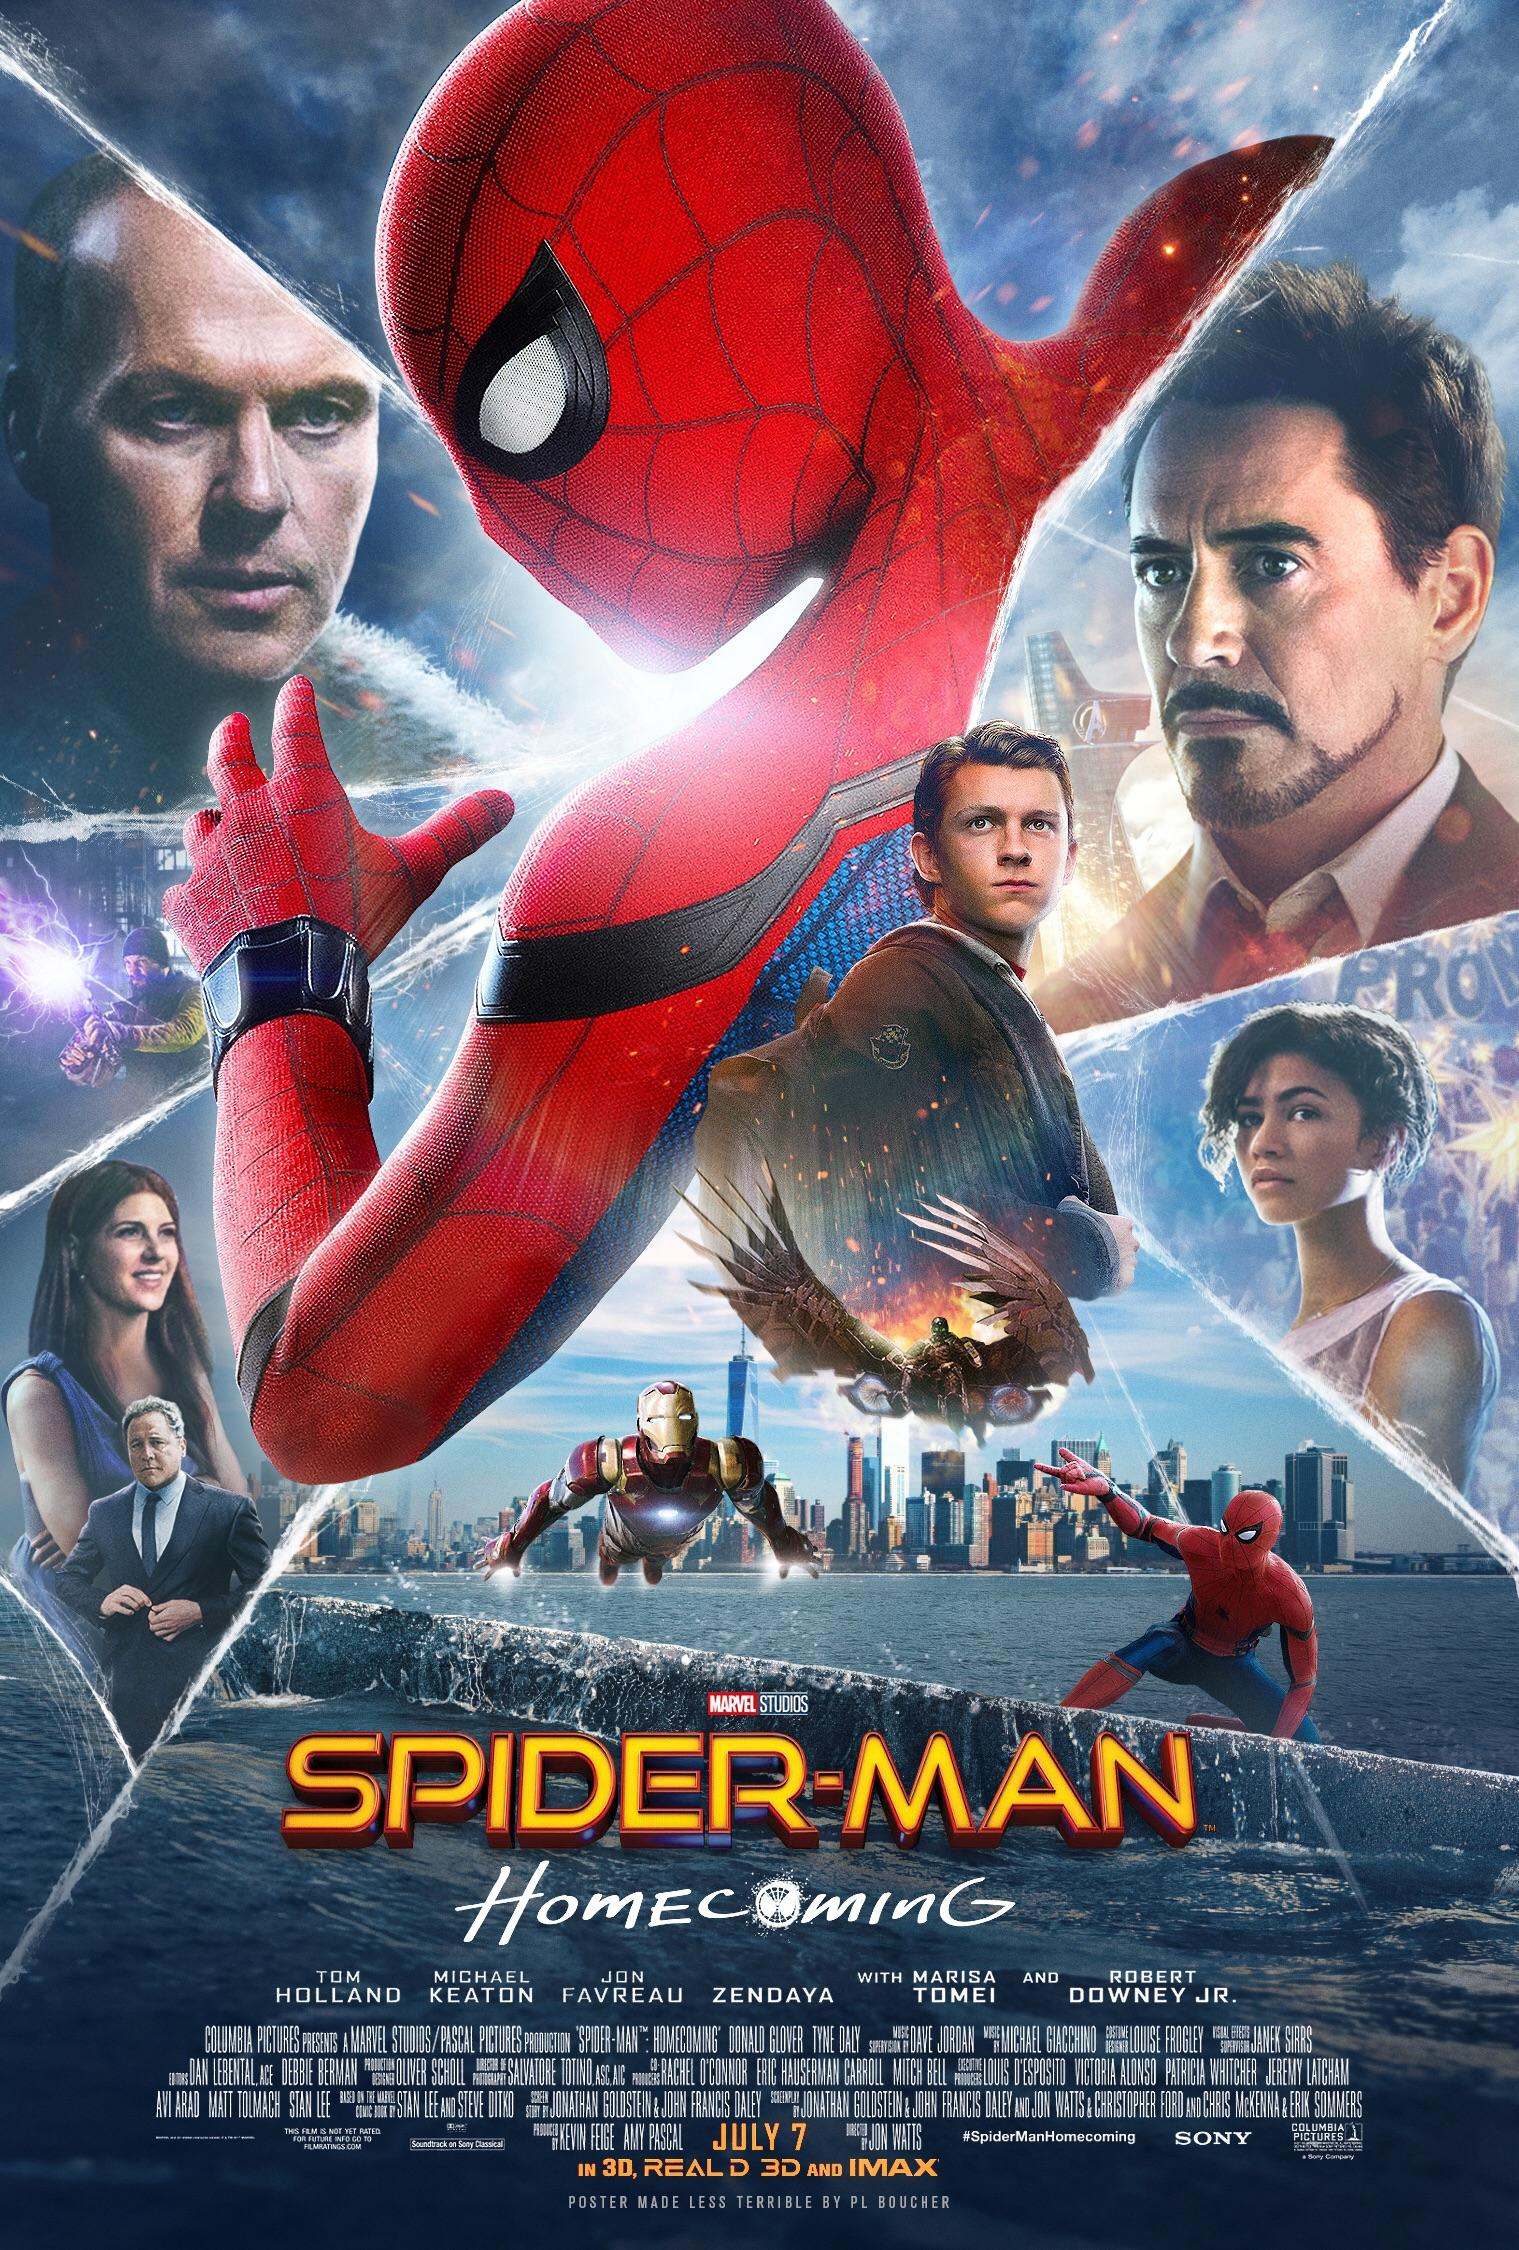 spiderman homecoming poster high quality HD printable wallpapers all characters